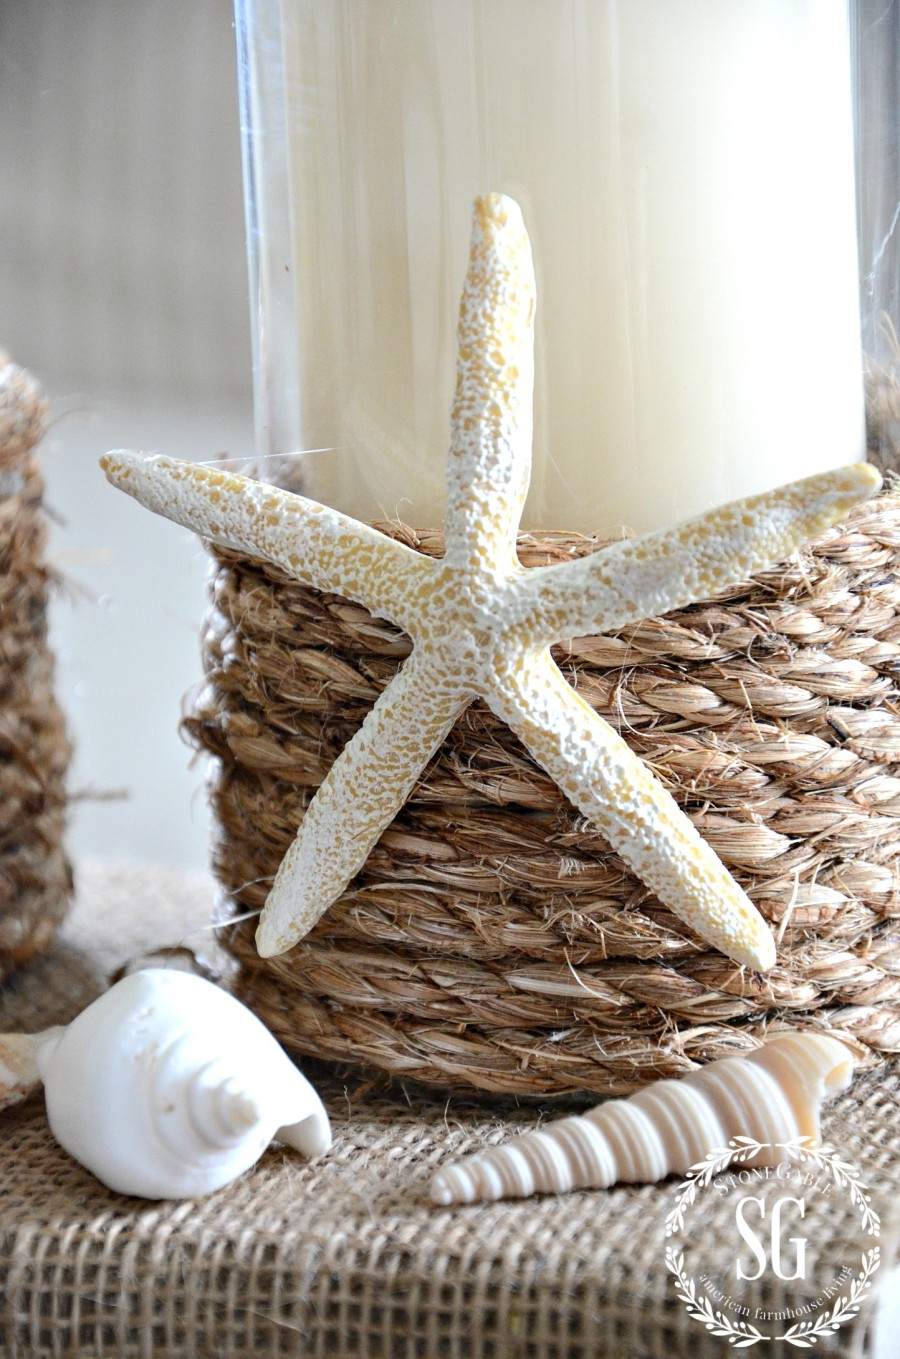 POTTERY BARN INSPIRED ROPE WRAPPED CANDLE HOLDER DIY-organic-beach chic-stonegableblog.com